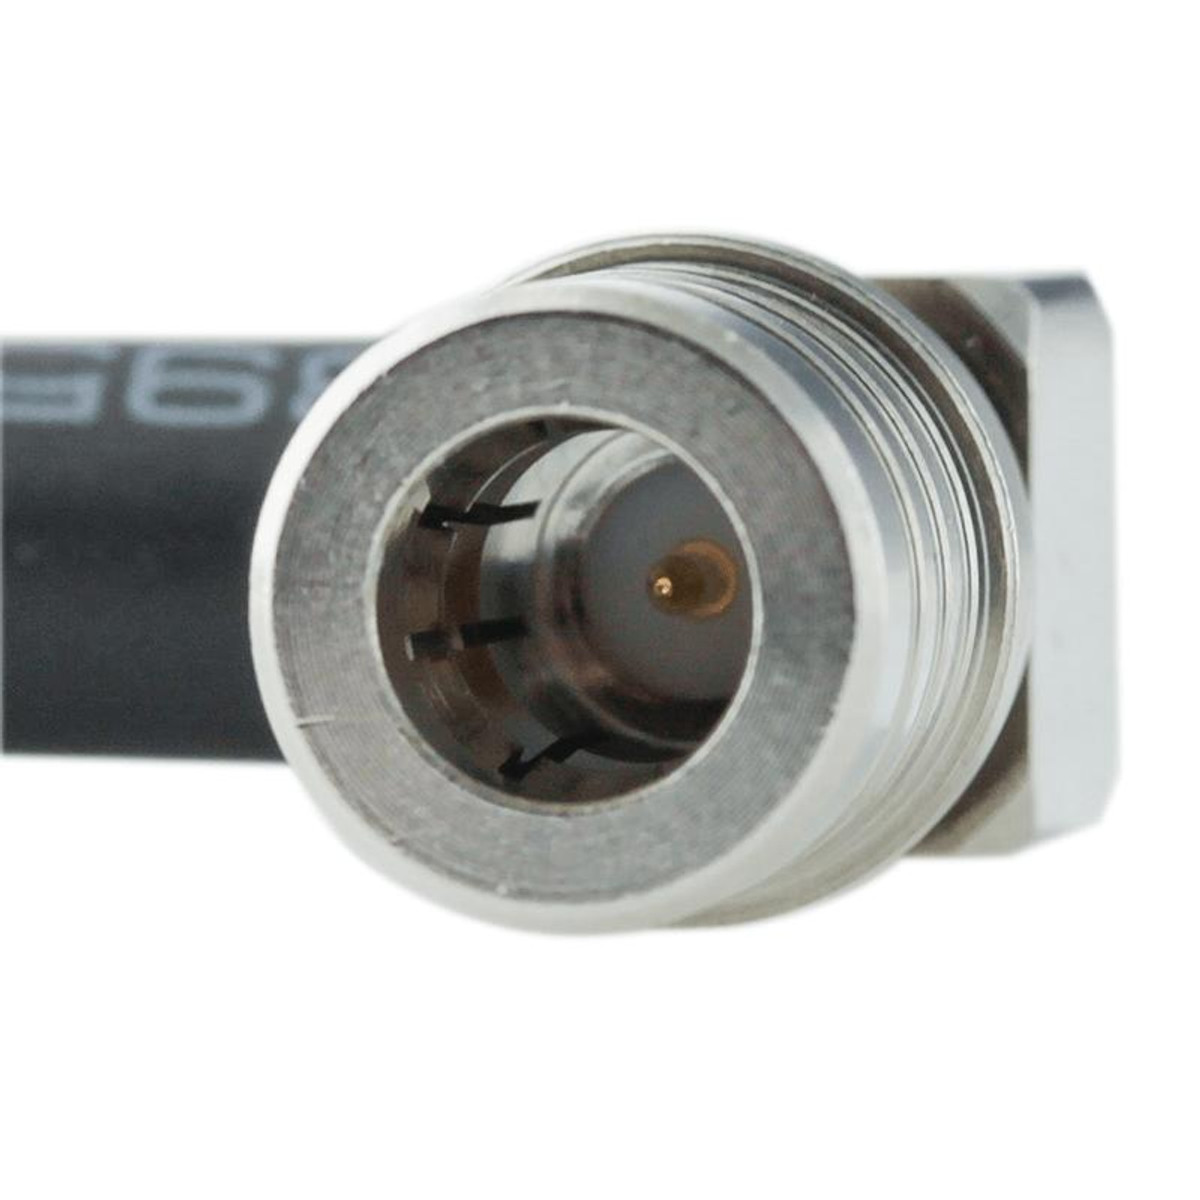 Bolton Tech Bolton Technical 1 meter N-Female Bulkhead to QMA-Male Angle Coax RF Pigtail Cable